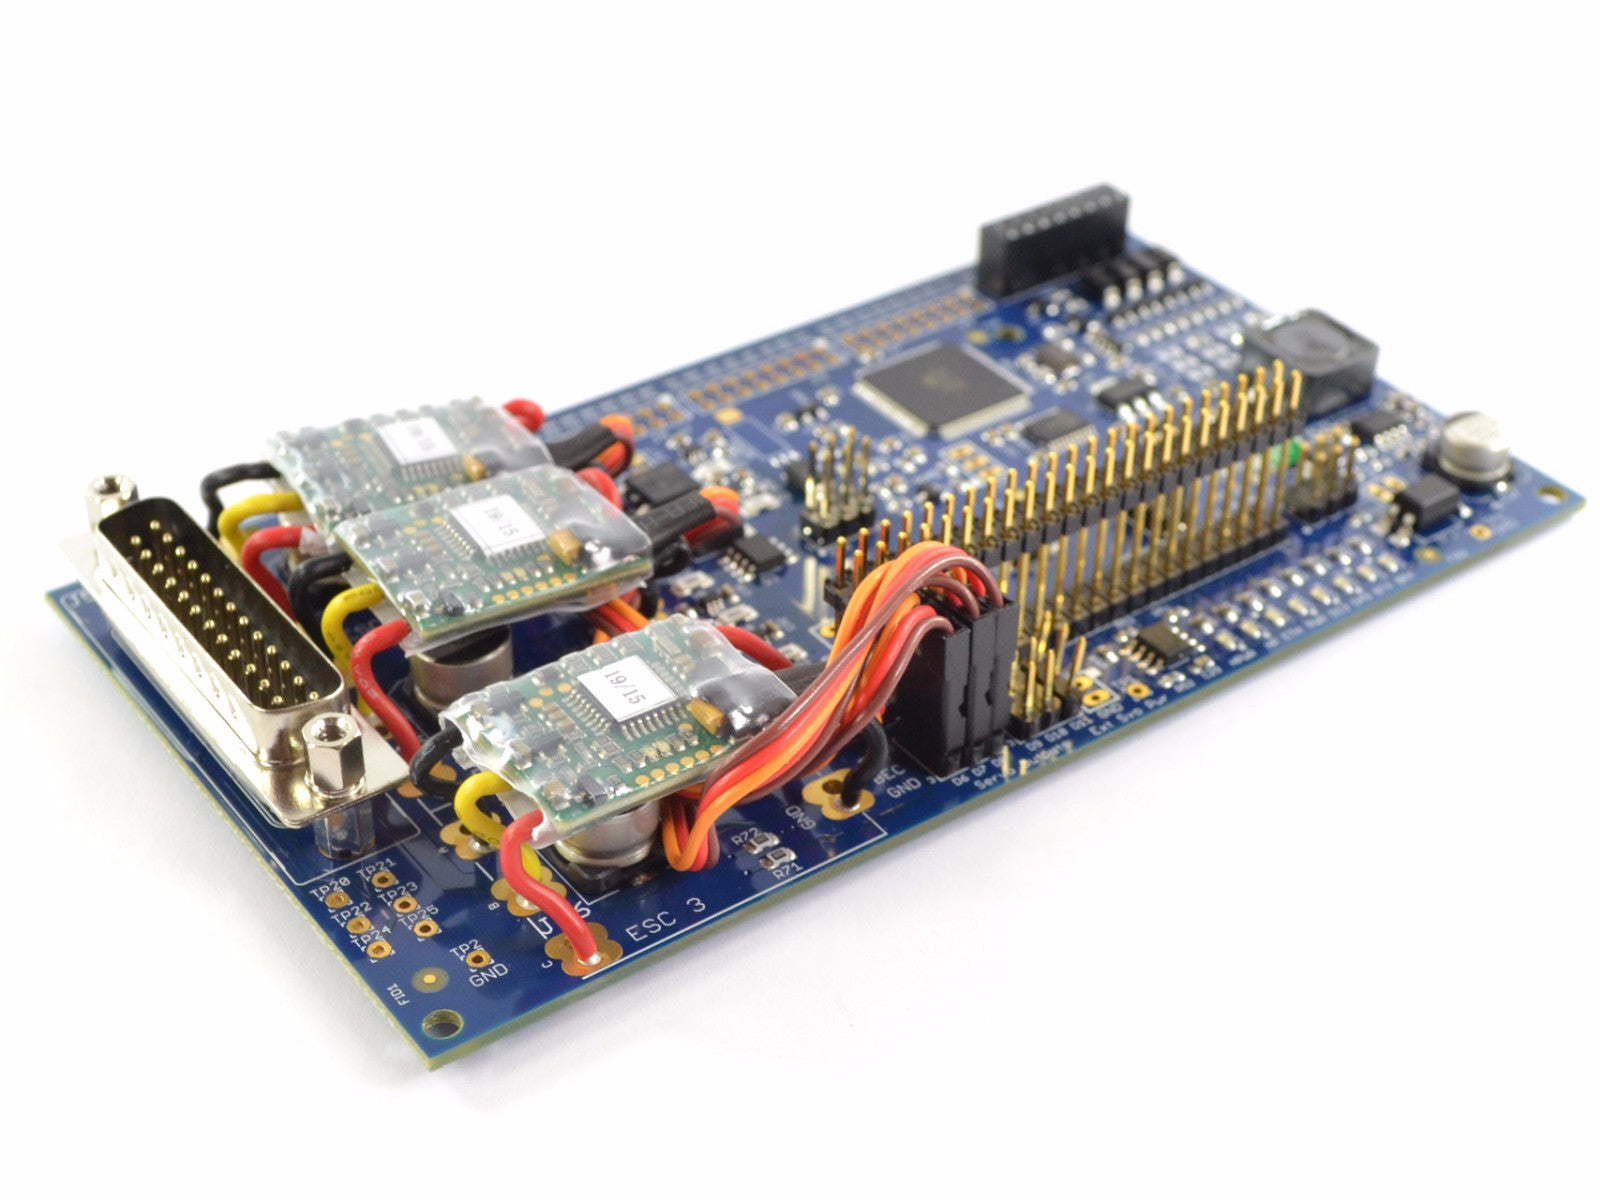 Backwards Compatible Openrov Controller Board V28 Accessories Others Repair Parts X3 Motherboard Circuit Used For Camera And Operations Underwater Drone